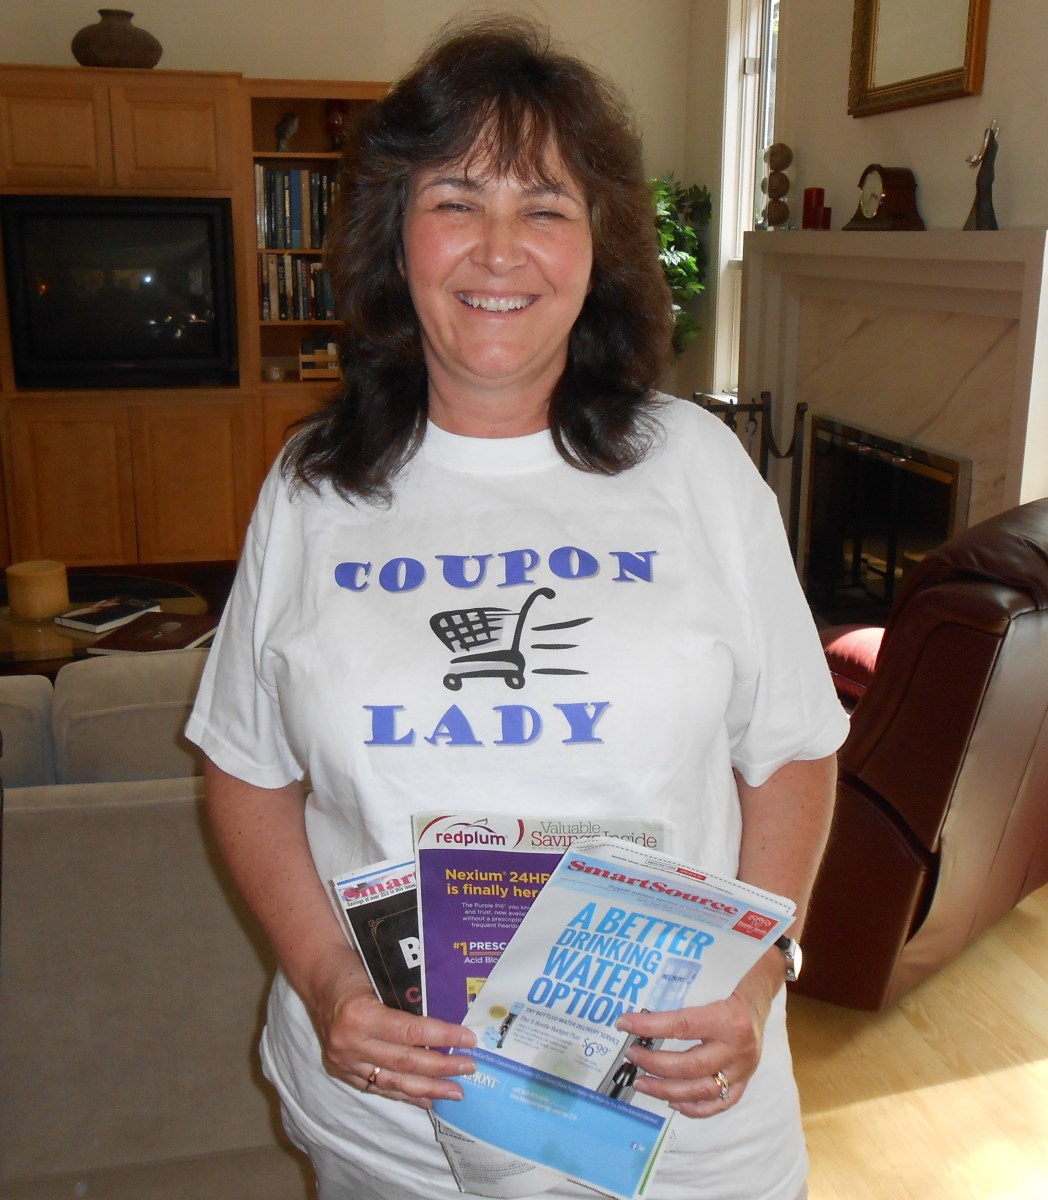 """Here I am in my """"Coupon Lady T-shirt which I wear with small groups of classes just for fun. I had this made special."""